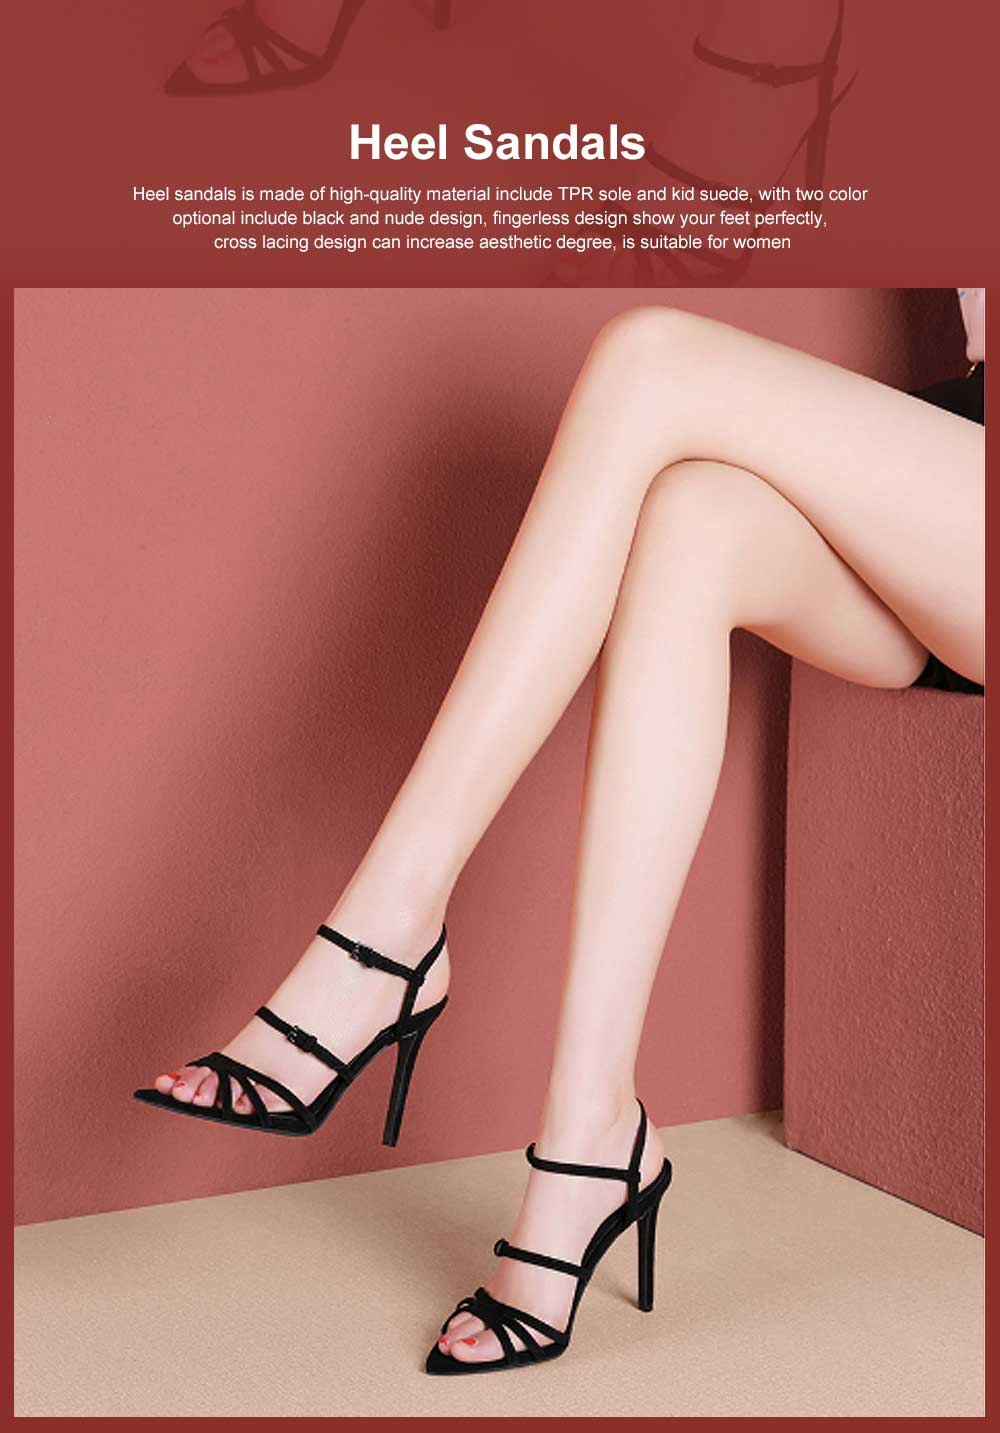 Heel Sandals for Women, Cross Lacing High-heeled Shoes with Fingerless TPR Sole, Kid Suede Heel-height 8cm Leather High Heels 0